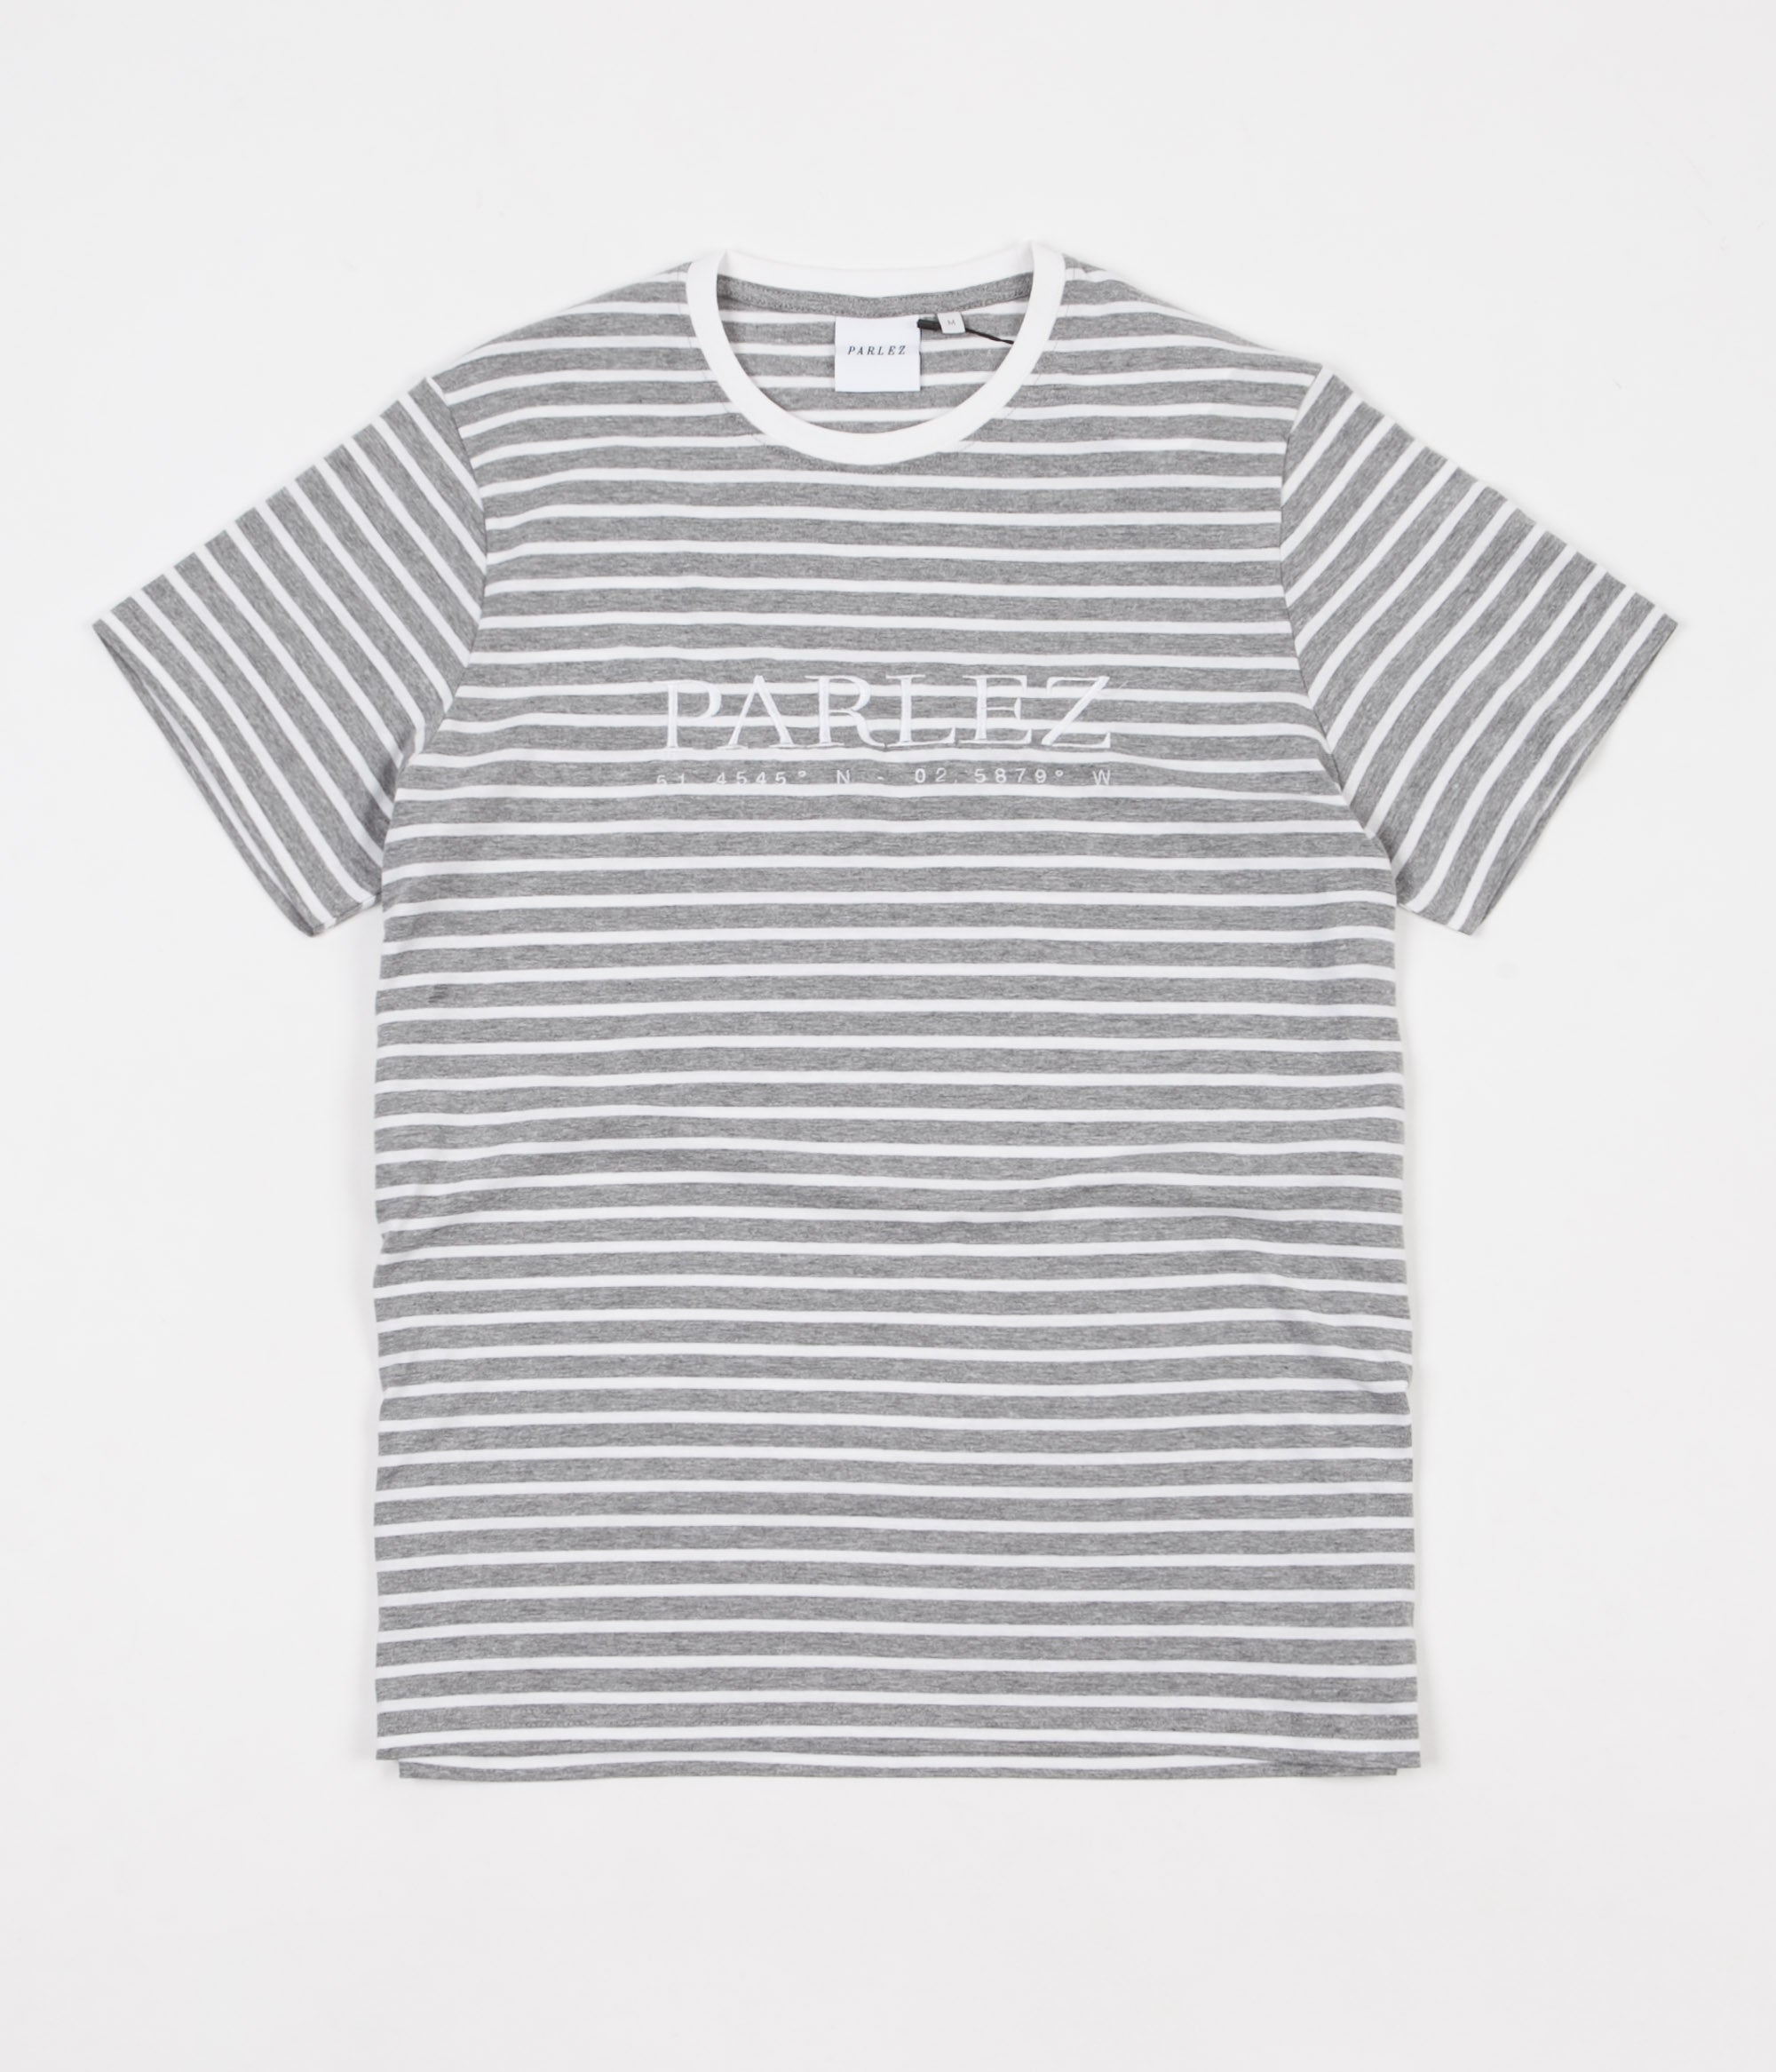 Parlez Coordinates T-Shirt - Heather Stripe